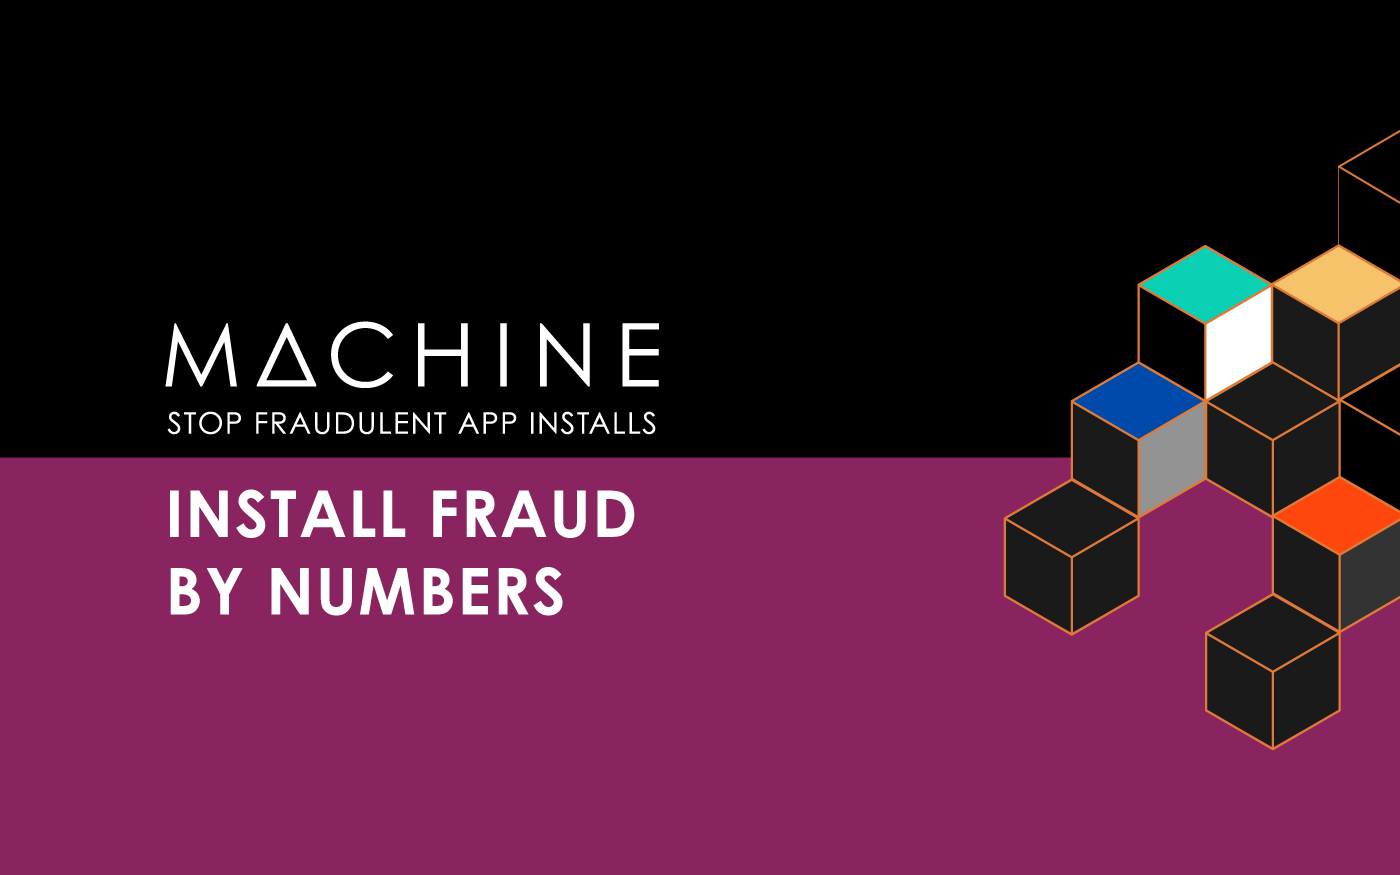 INSTALL-FRAUD-BY-NUMBERS-PREVIEW-IMAGE